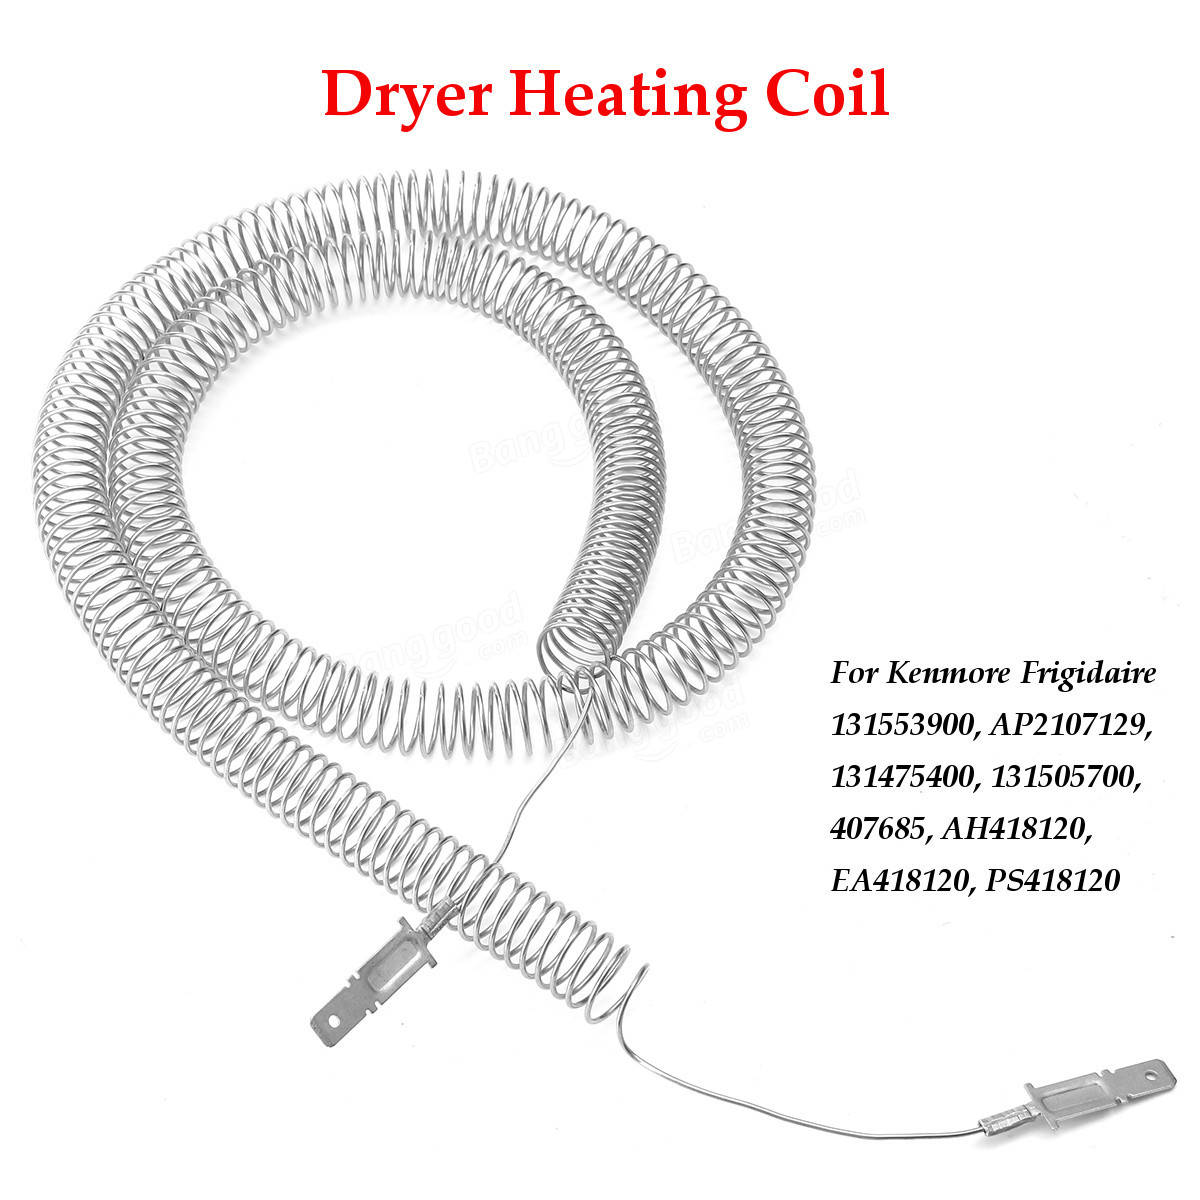 Restring Dryer Heating Element Heater Coil For Kenmore